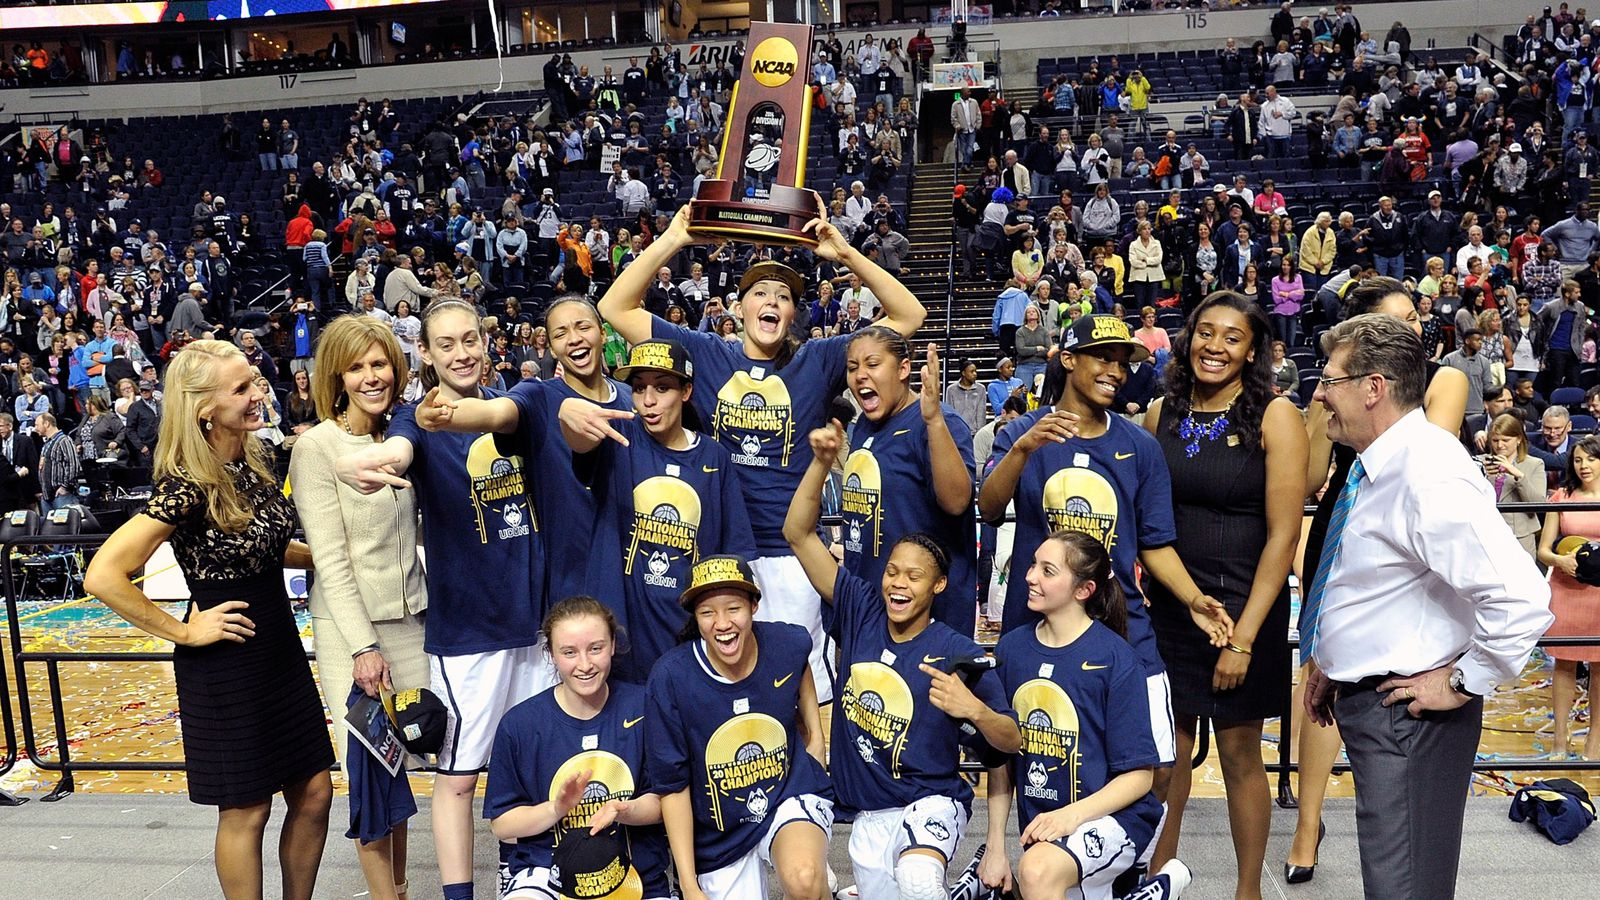 2014 NCAA Final Four: UConn wins the 2014 NCAA Division I Women's Basketball Championship ...